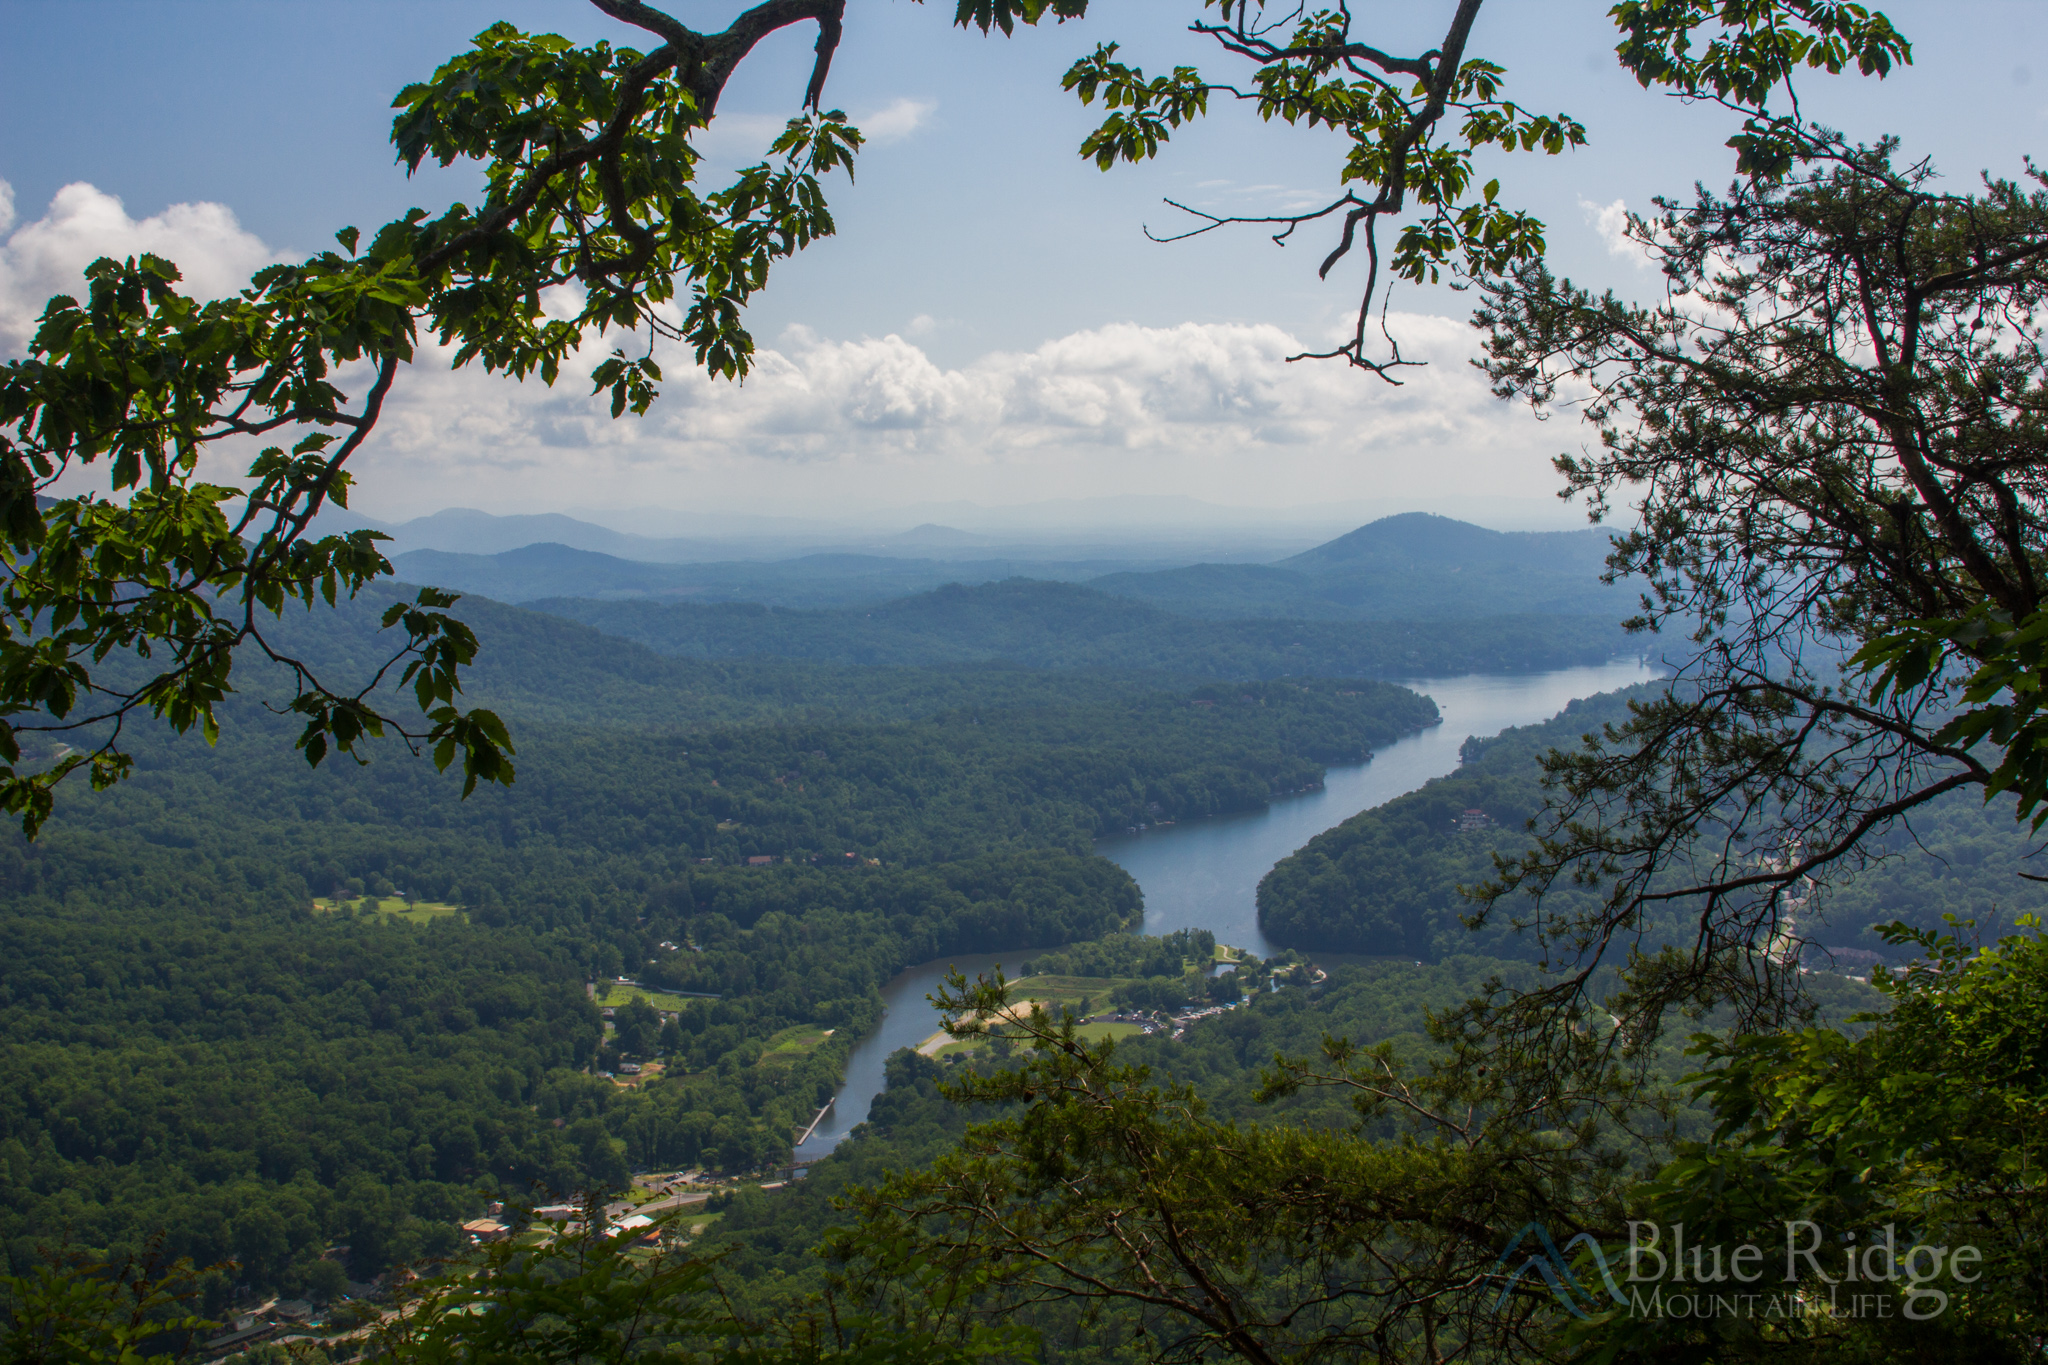 View from Skylounge at Chimney Rock State Park